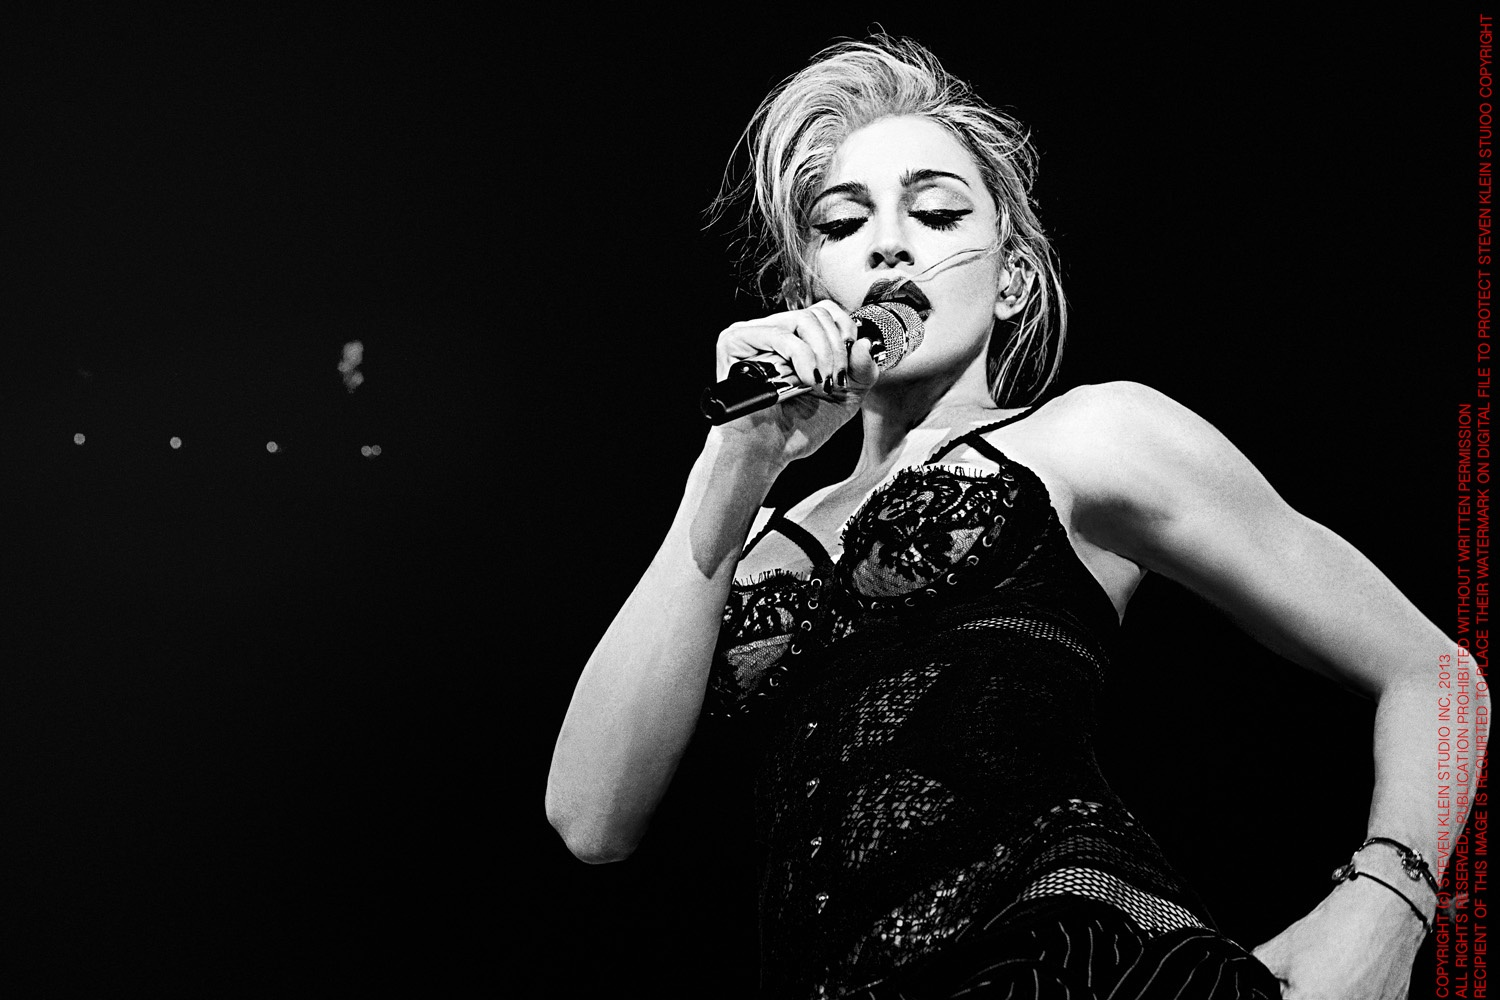 20130717-pictures-madonna-mdna-tour-dvd-